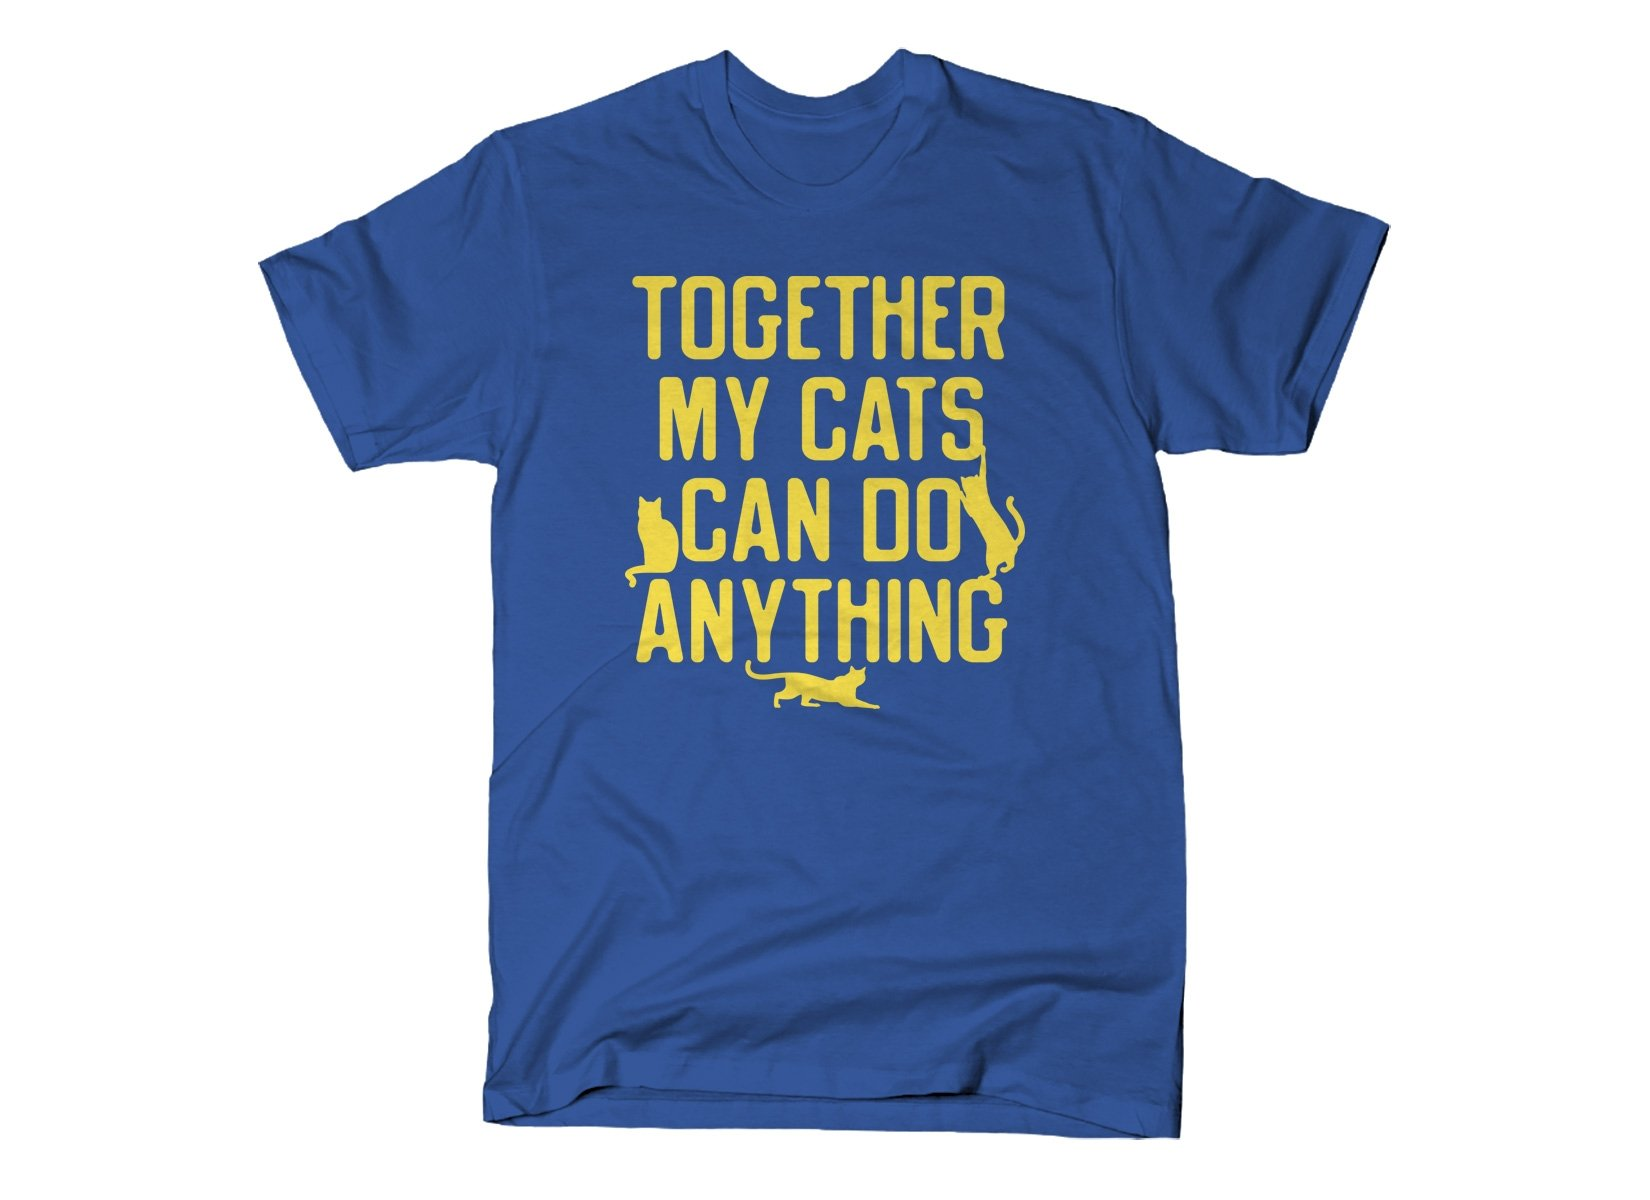 Together My Cats Can Do Anything on Mens T-Shirt